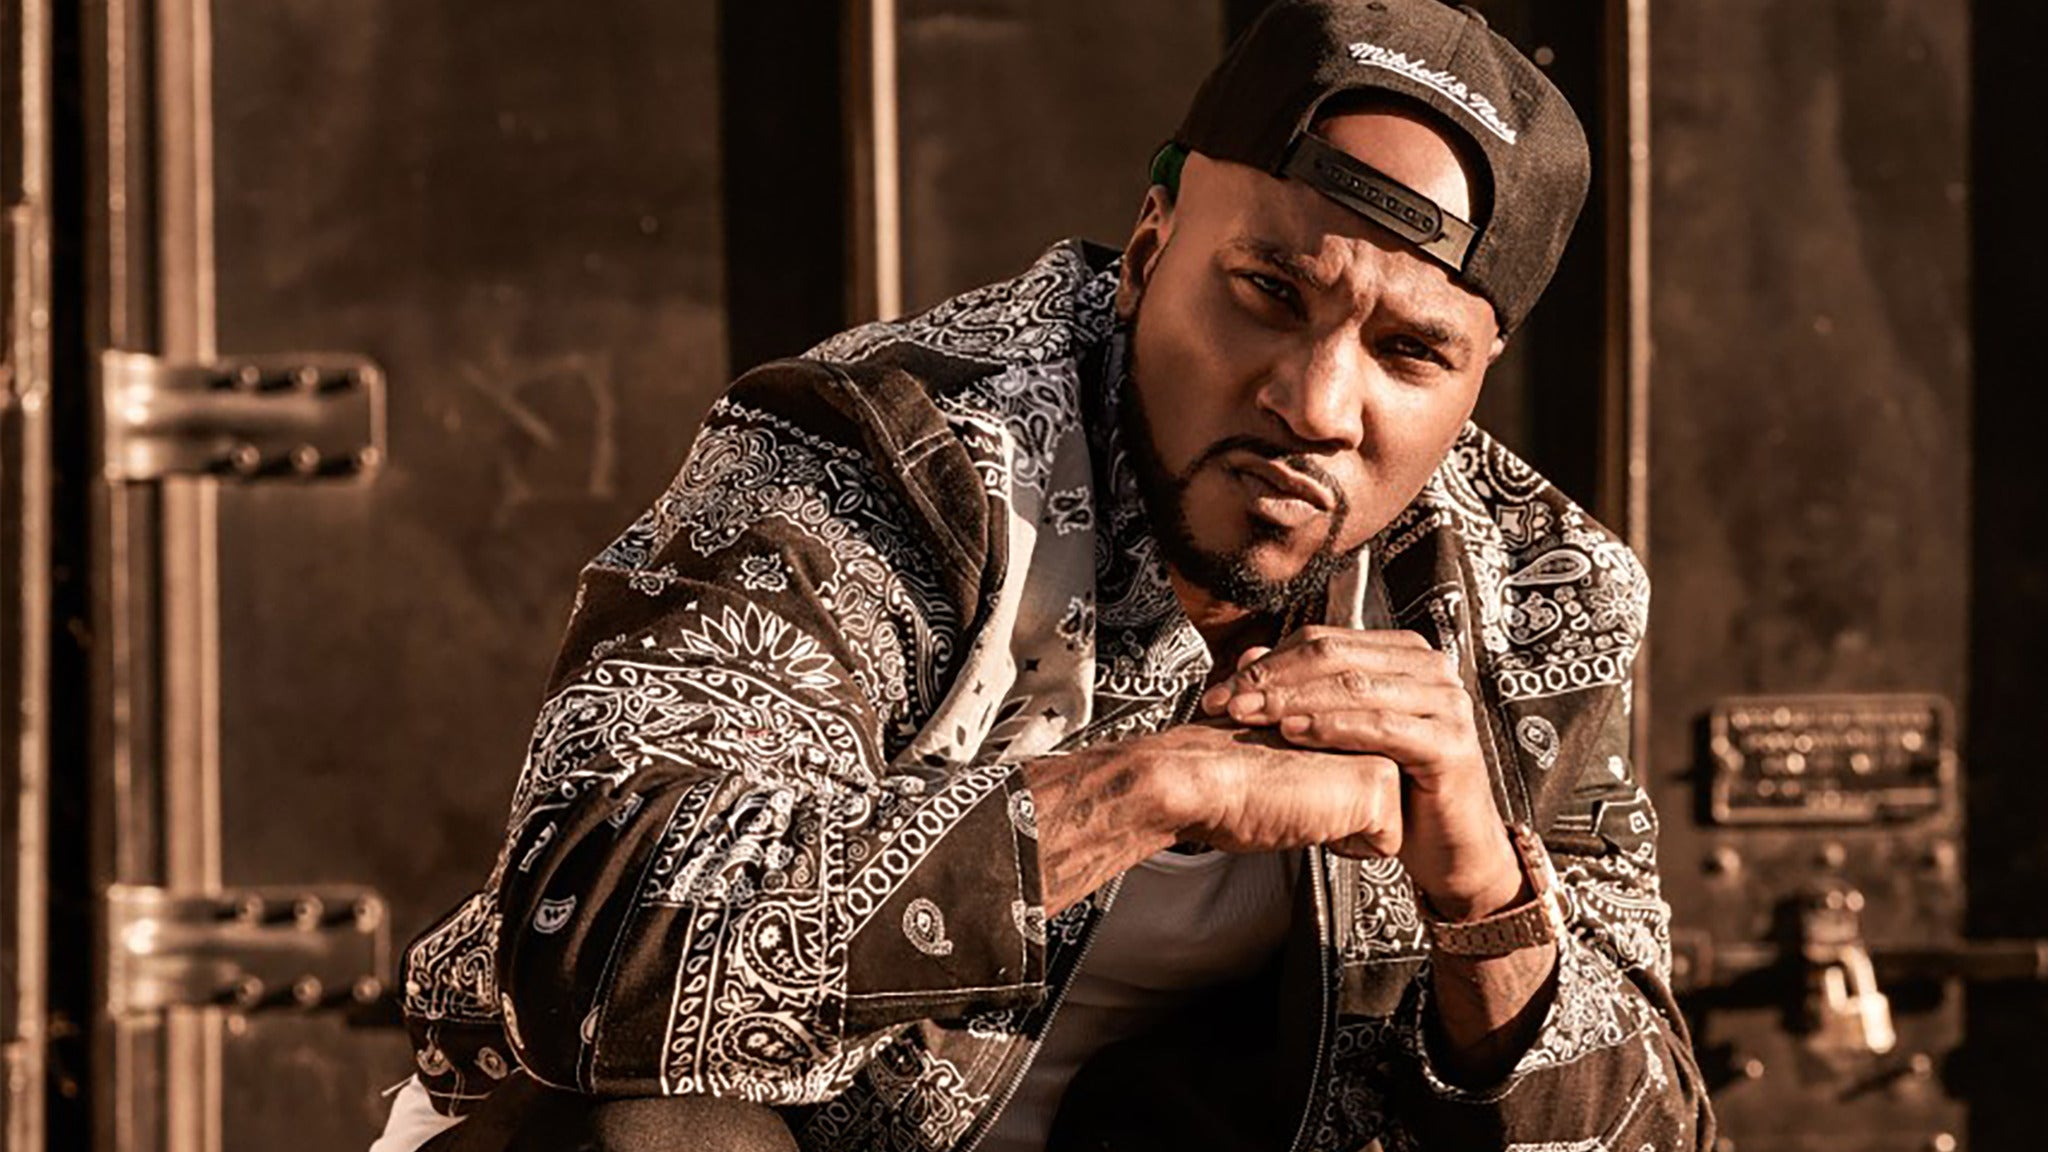 HOLLYWOOD THE PROMOTER presents Jeezy